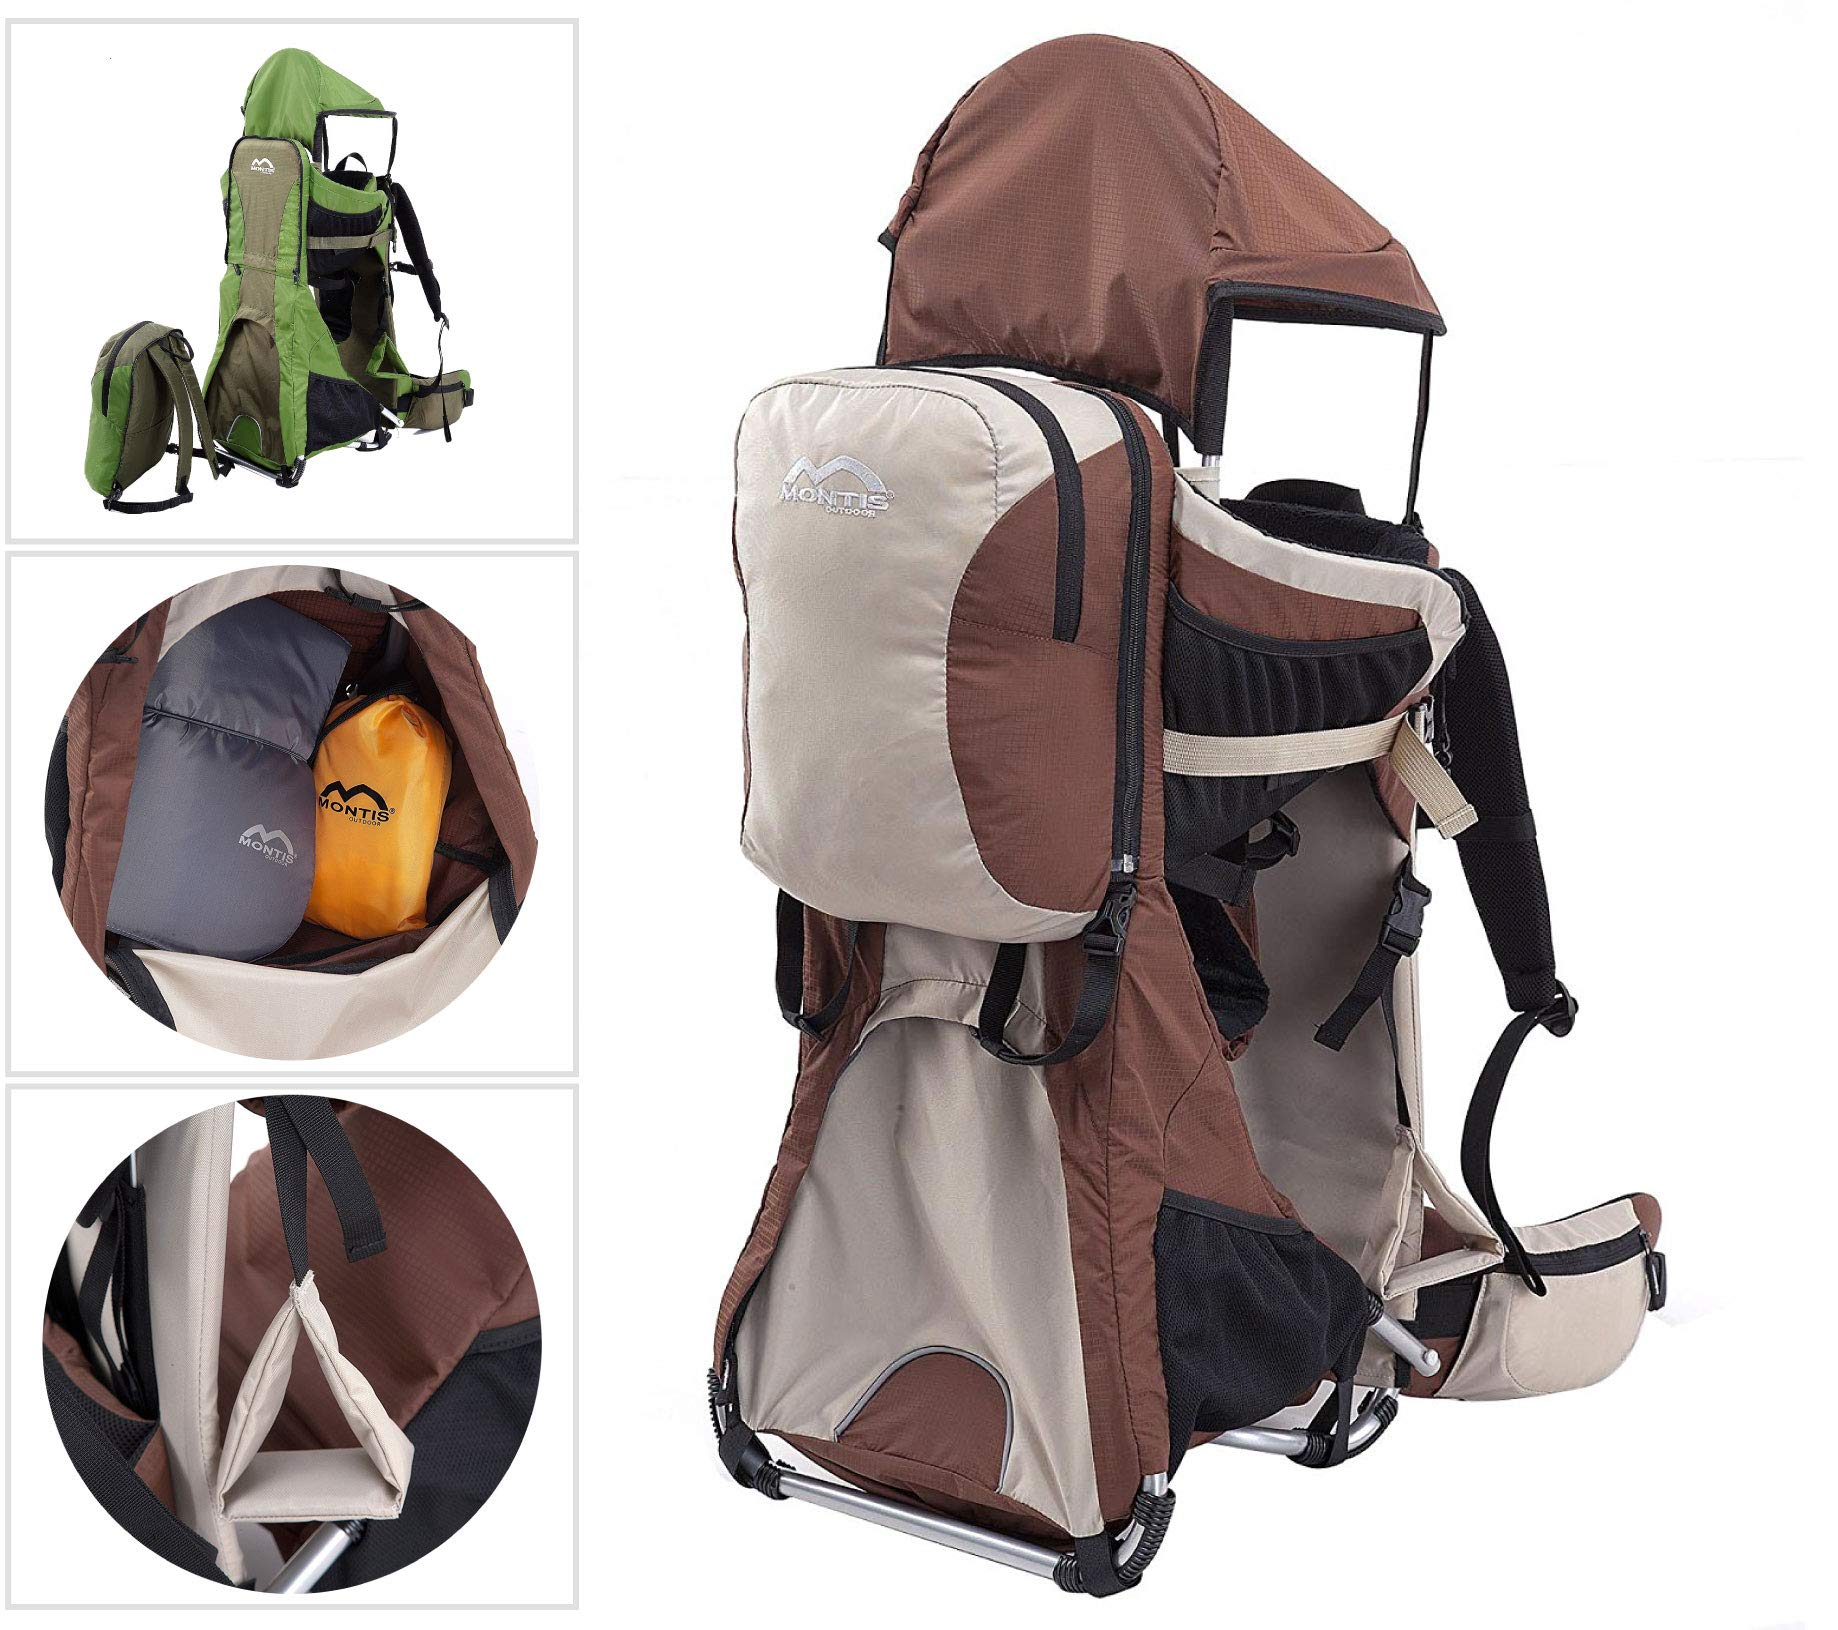 MONTIS RANGER PRO - Premium Backpack/Child Carrier - Holds up to 25kg M MONTIS OUTDOOR  1